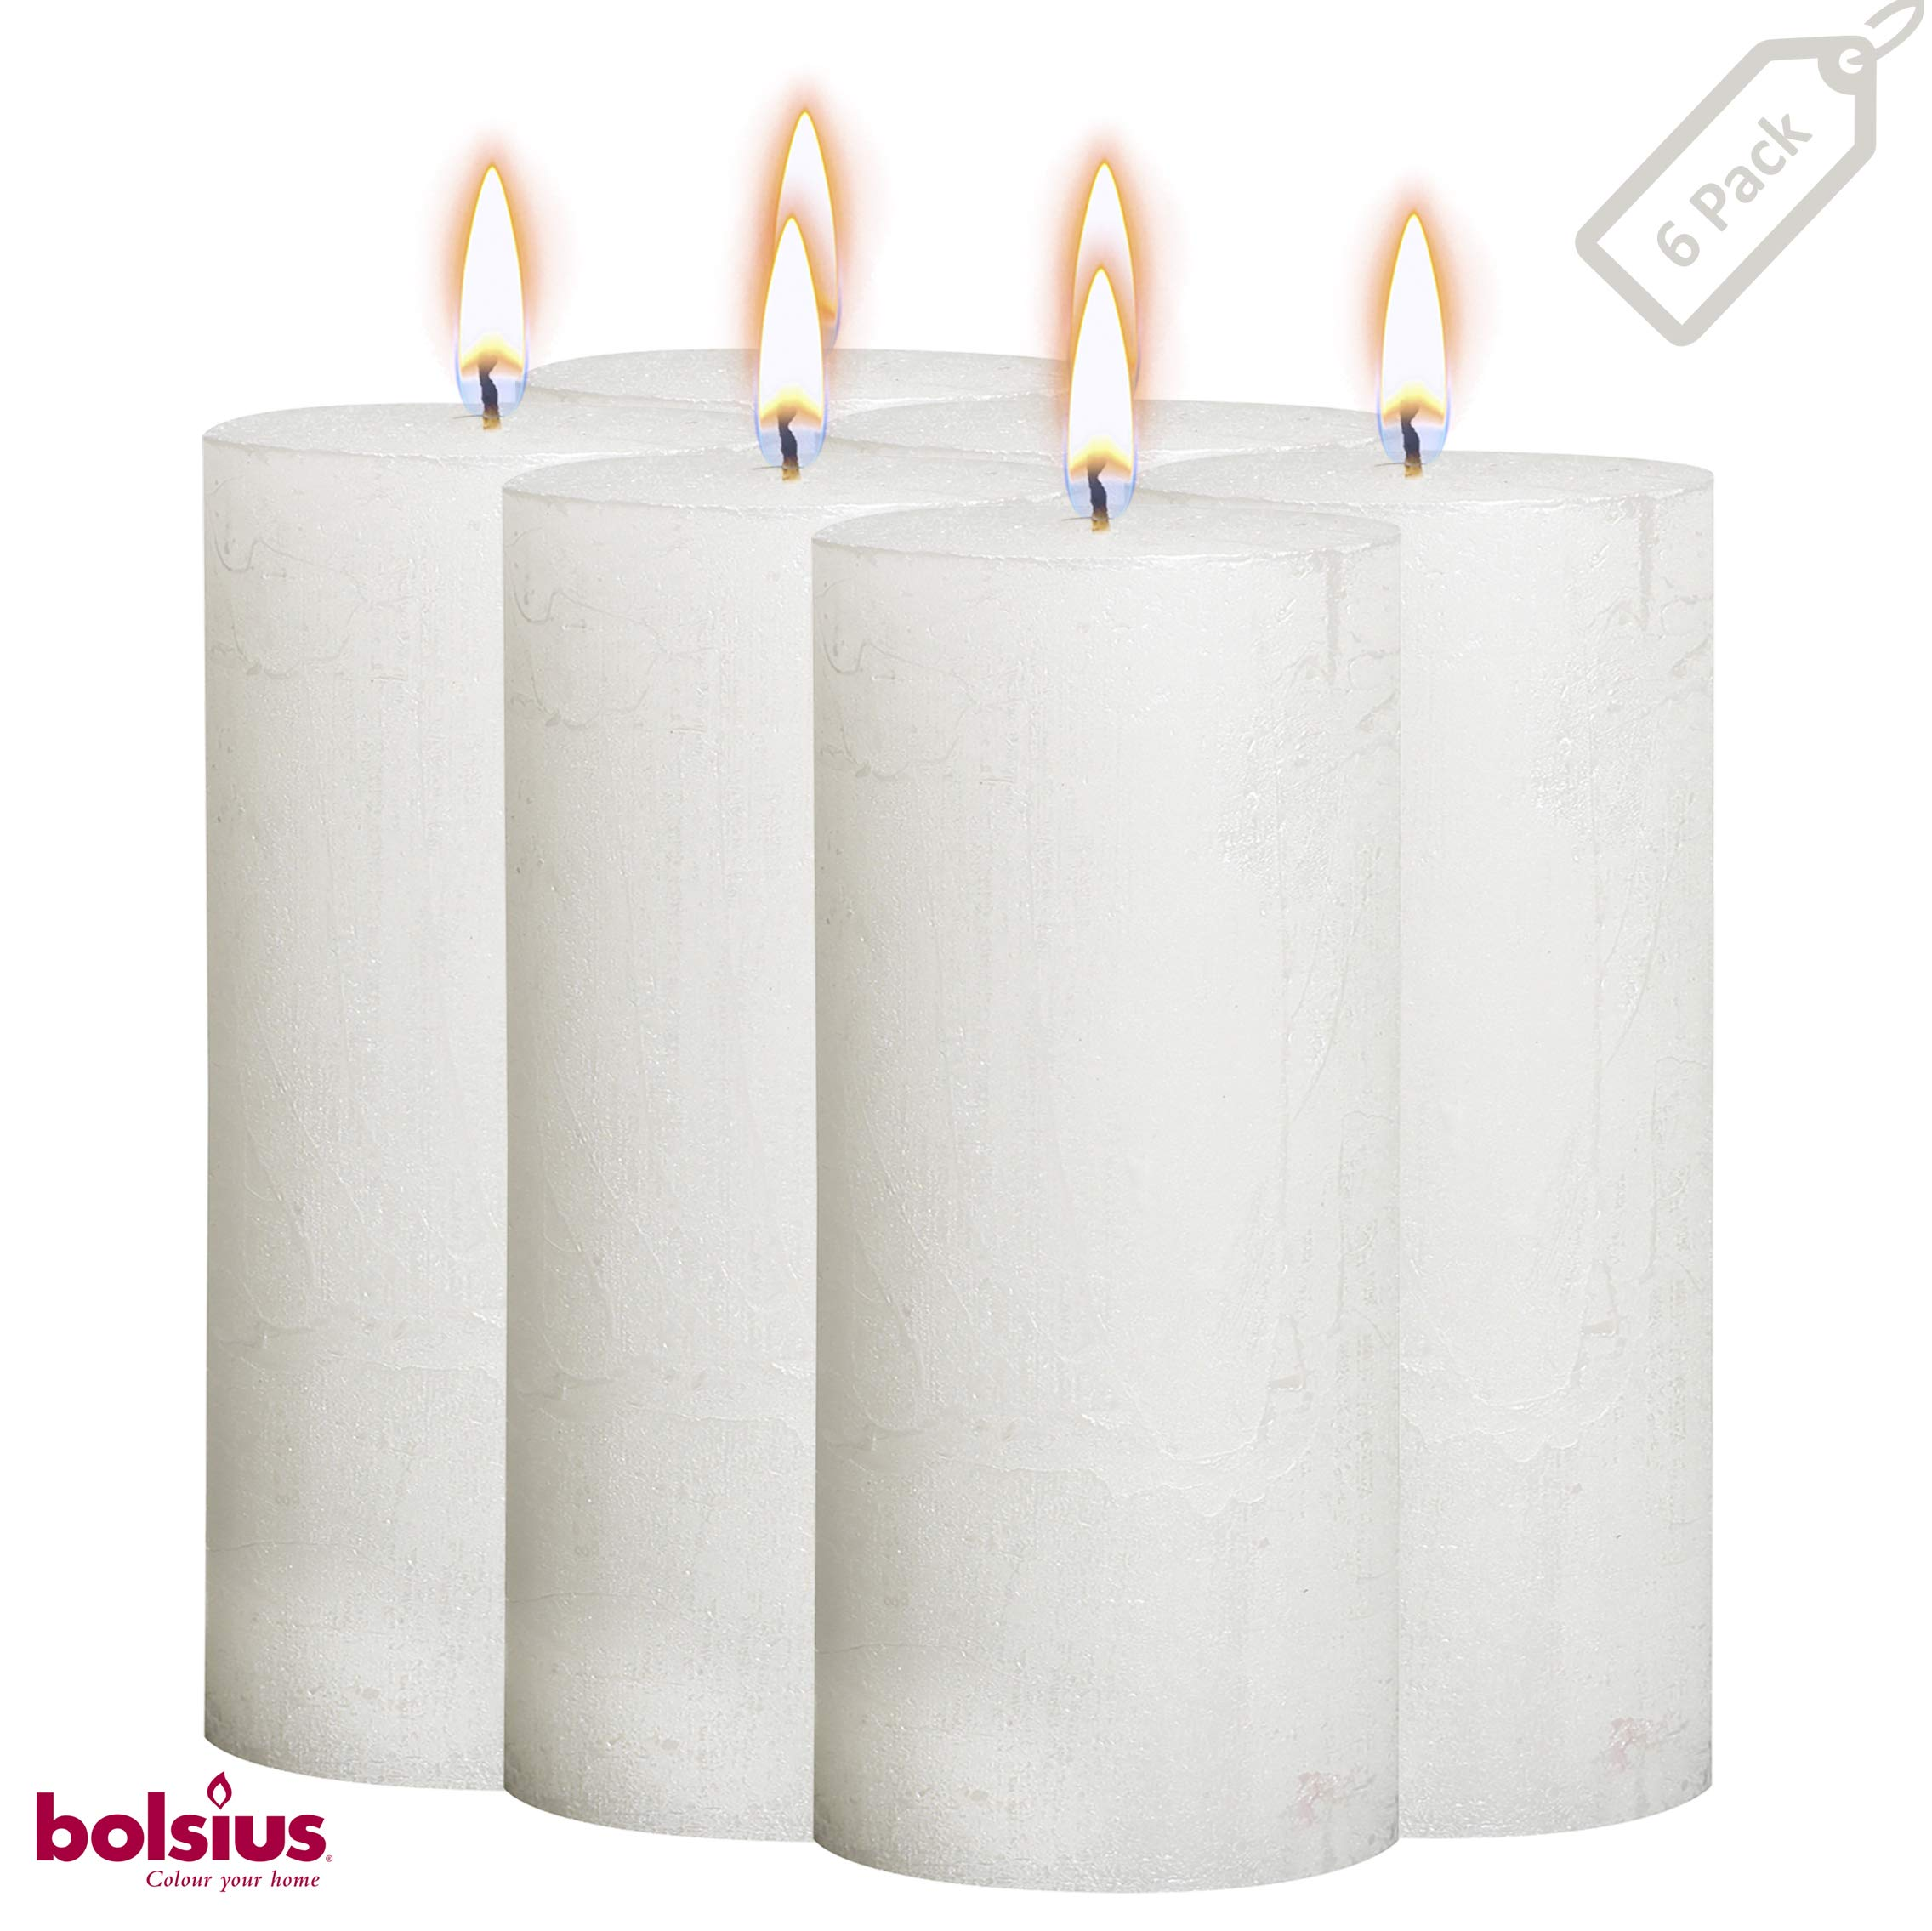 BOLSIUS Rustic Full Metallic White Candles – Set of 6 Unscented Pillar Candles – White Candles with a Full Metallic Coat – Slow Burning – Perfect Décor Candle – 190/68m 7.5X 2.75 Inches